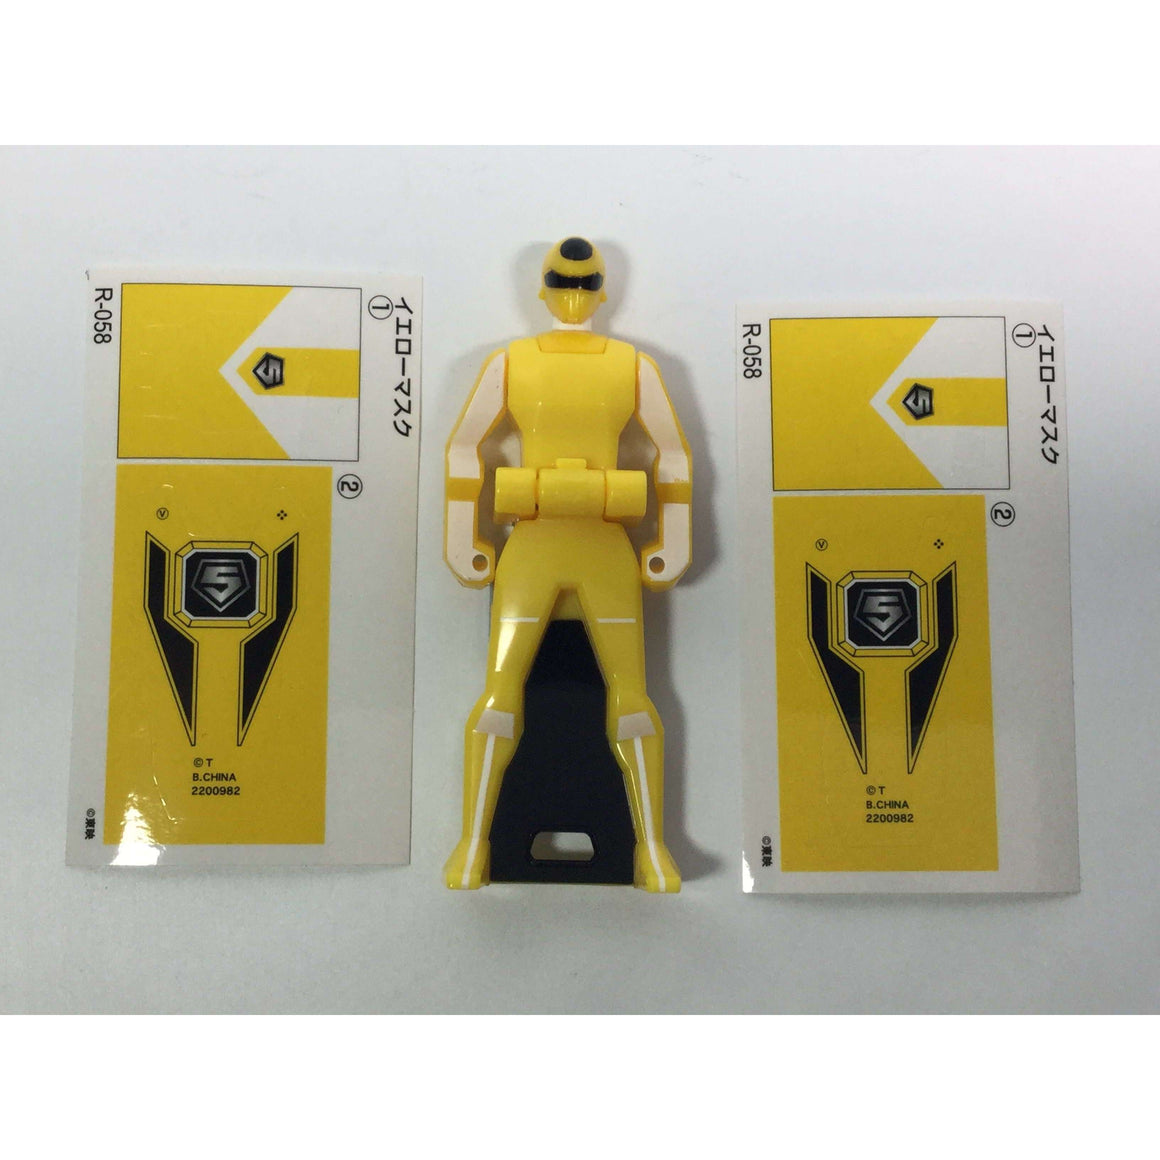 CSTOYS INTERNATIONAL:[LOOSE] Ranger Key: 1987 Maskman: Yellow Mask